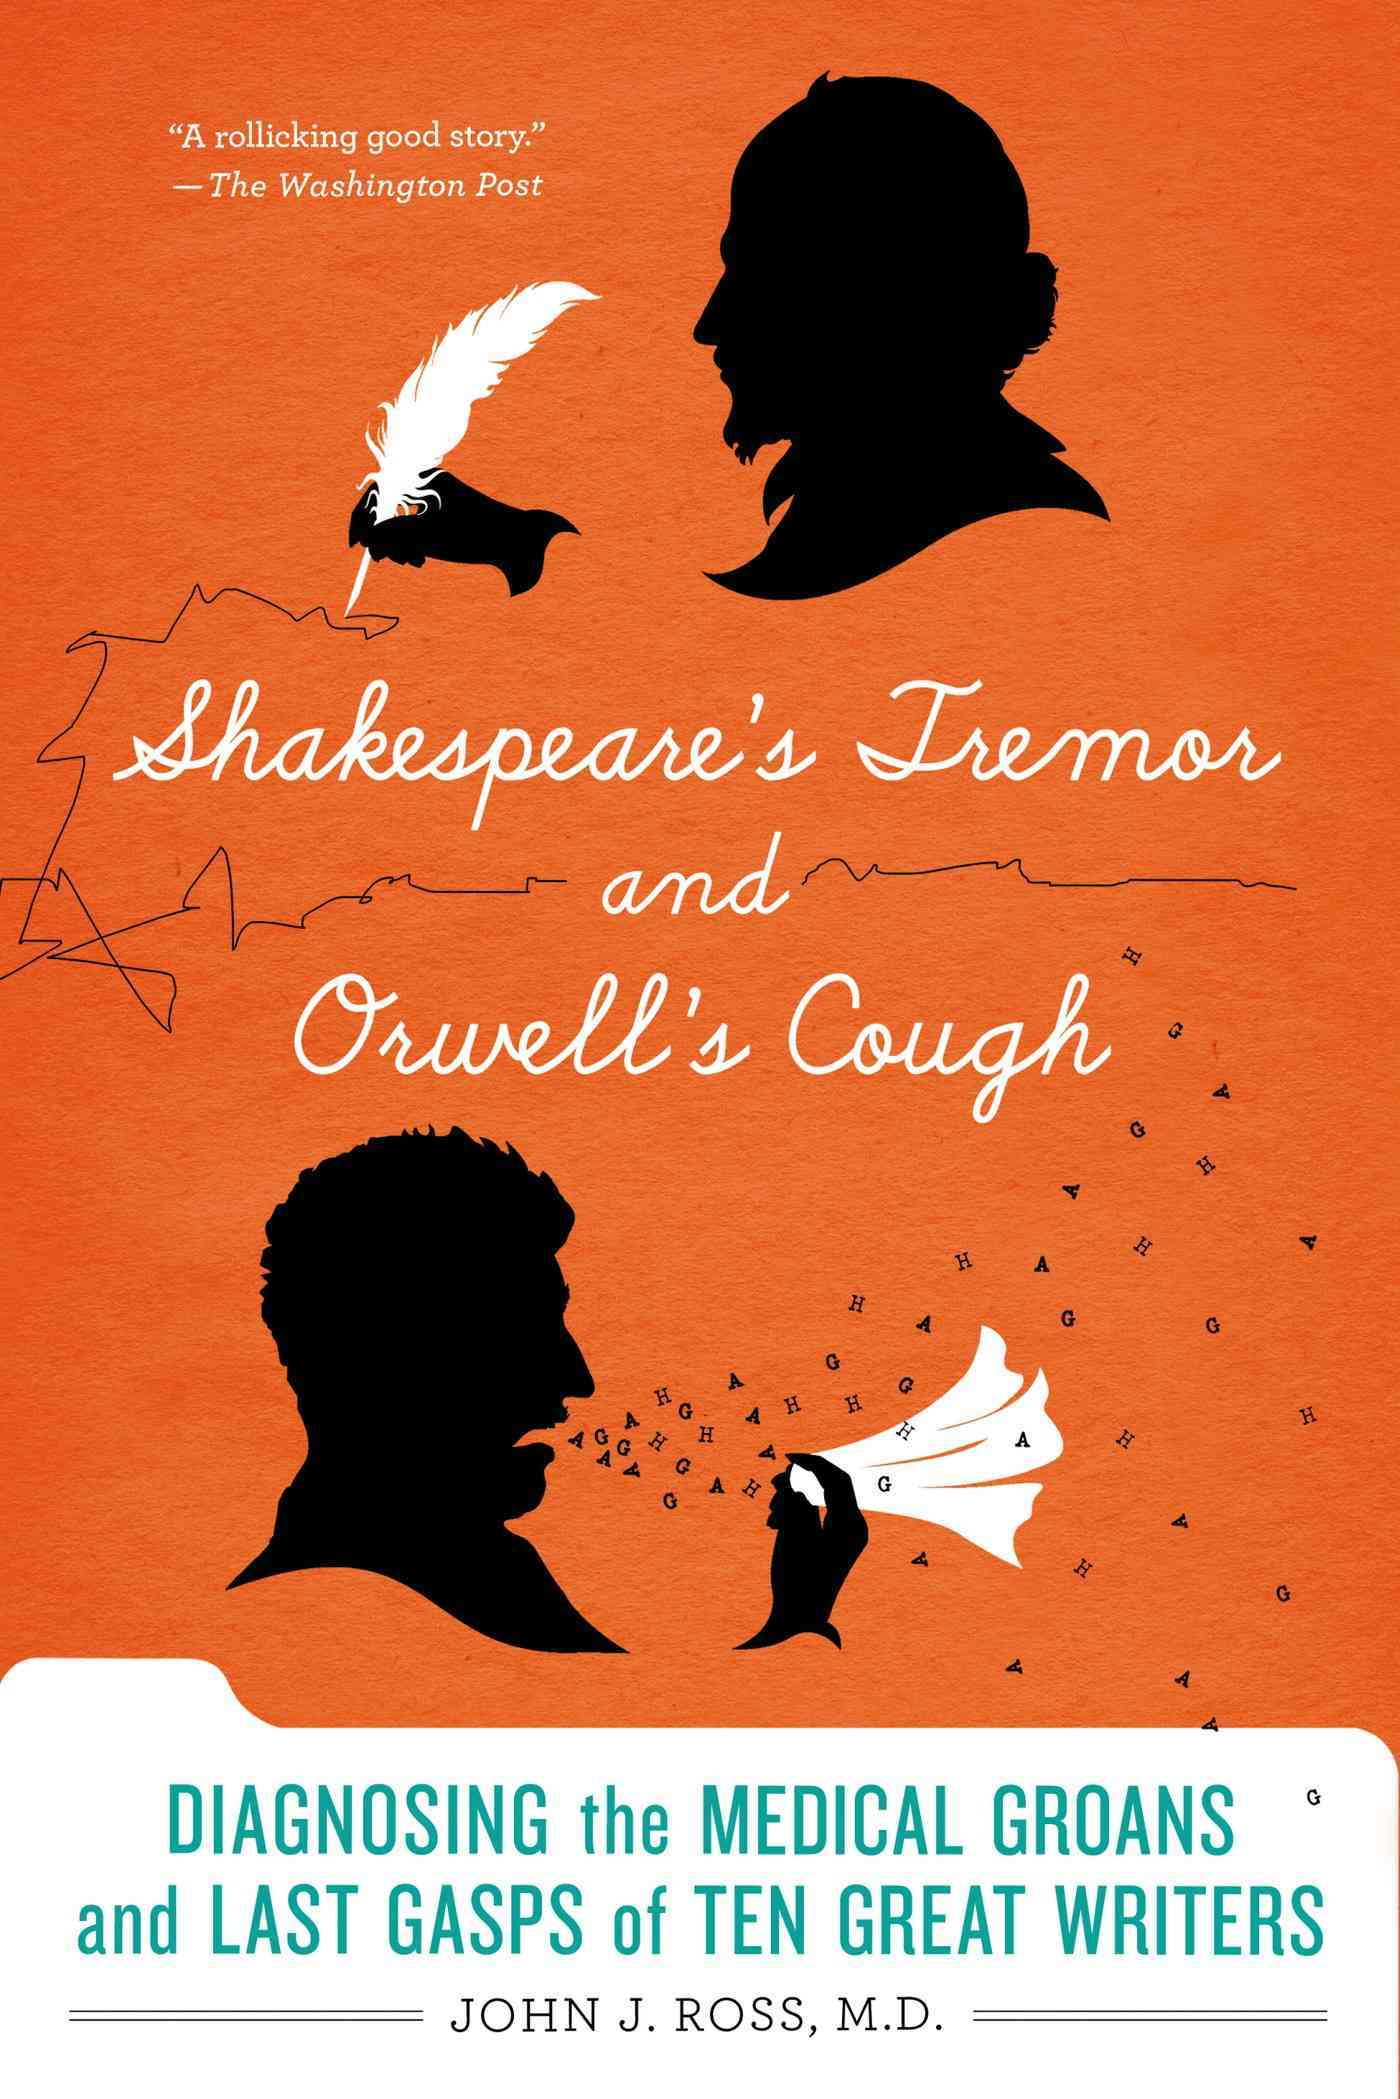 Shakespeare's Tremor and Orwell's Cough By Ross, John J., M.d.